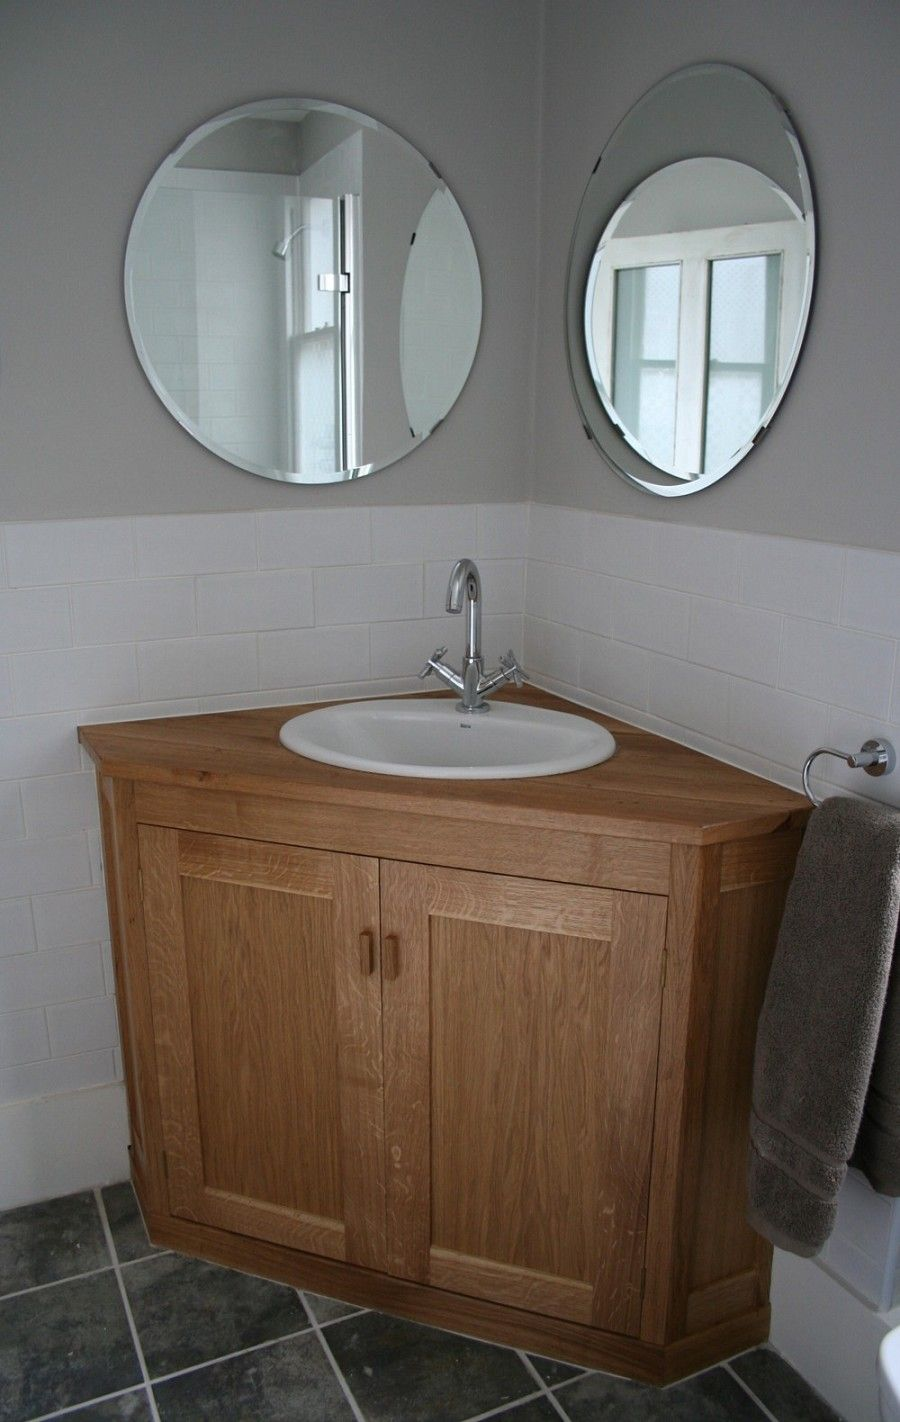 Corner Oak Wooden Vanity Furniture With Modern White Round